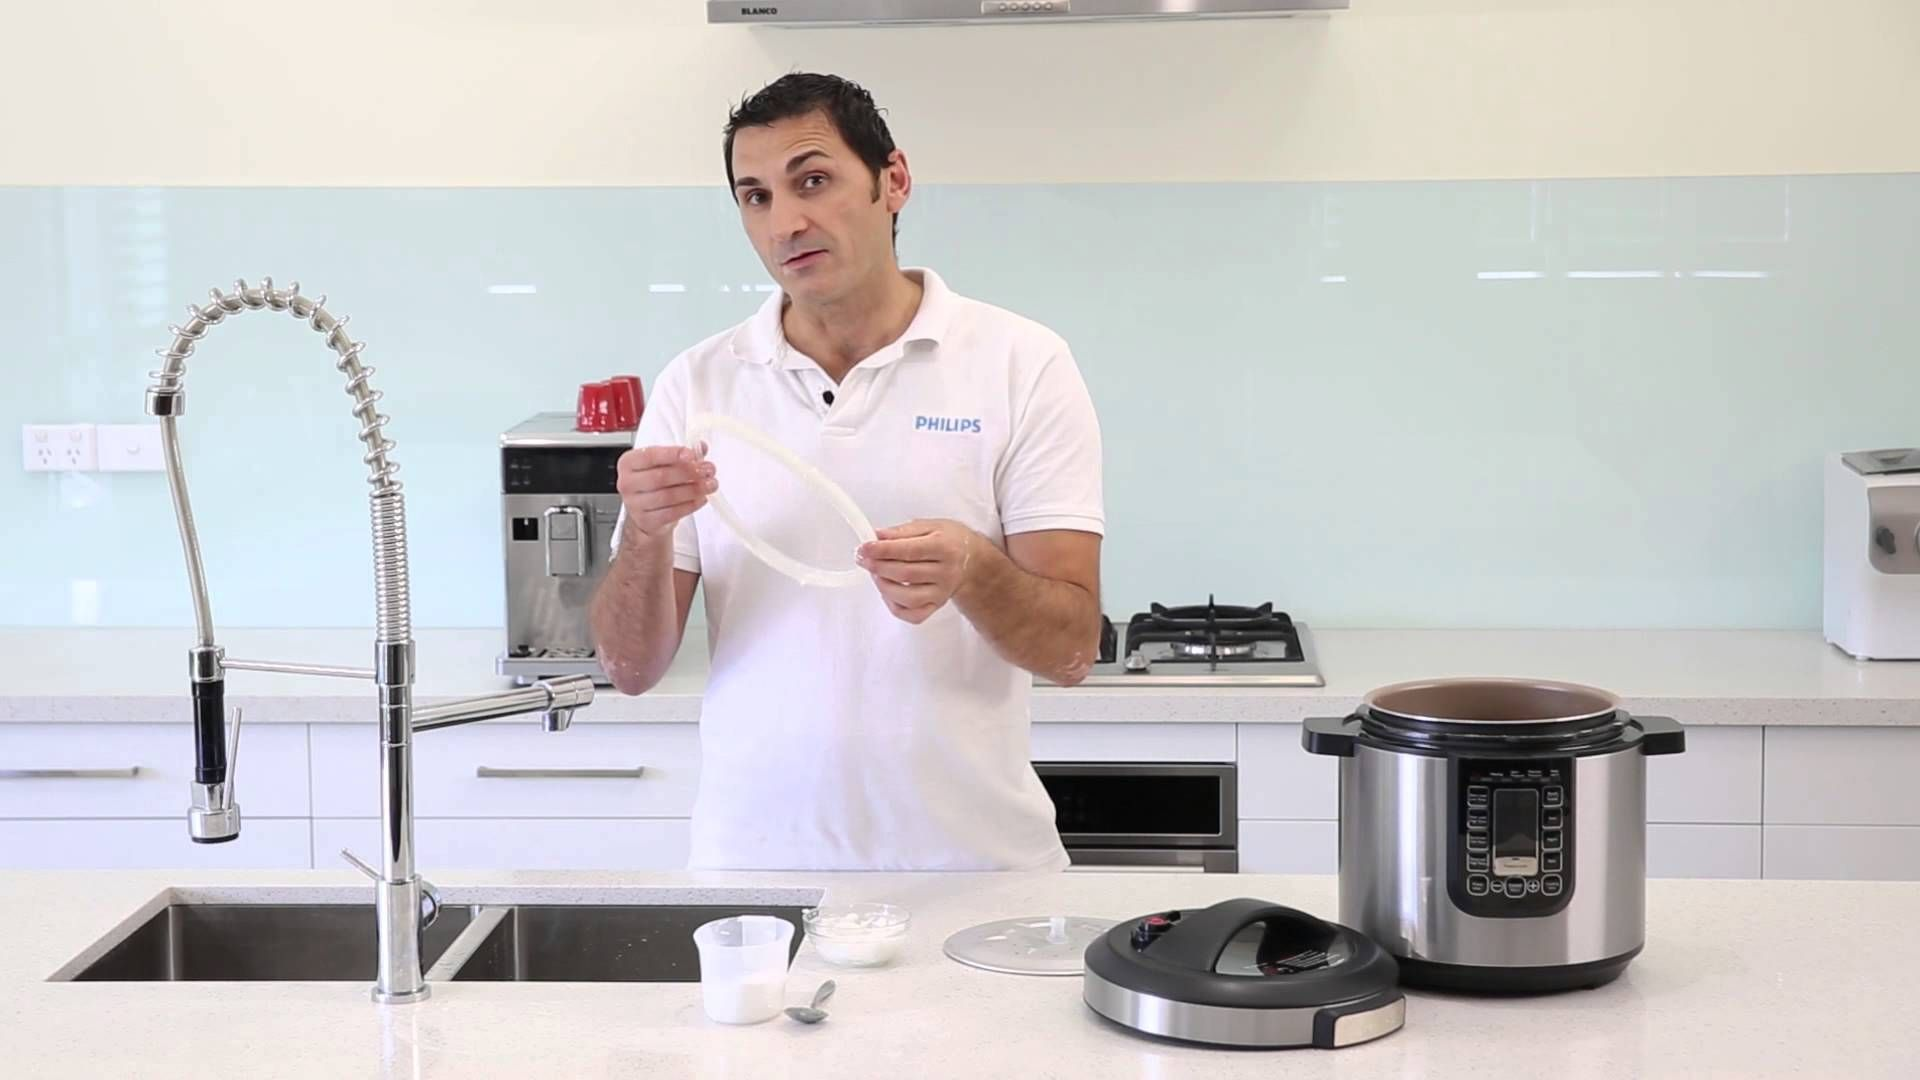 Philips Hd2137aio Cleaning The Gasket Cleaning Philips Pressure Cooking